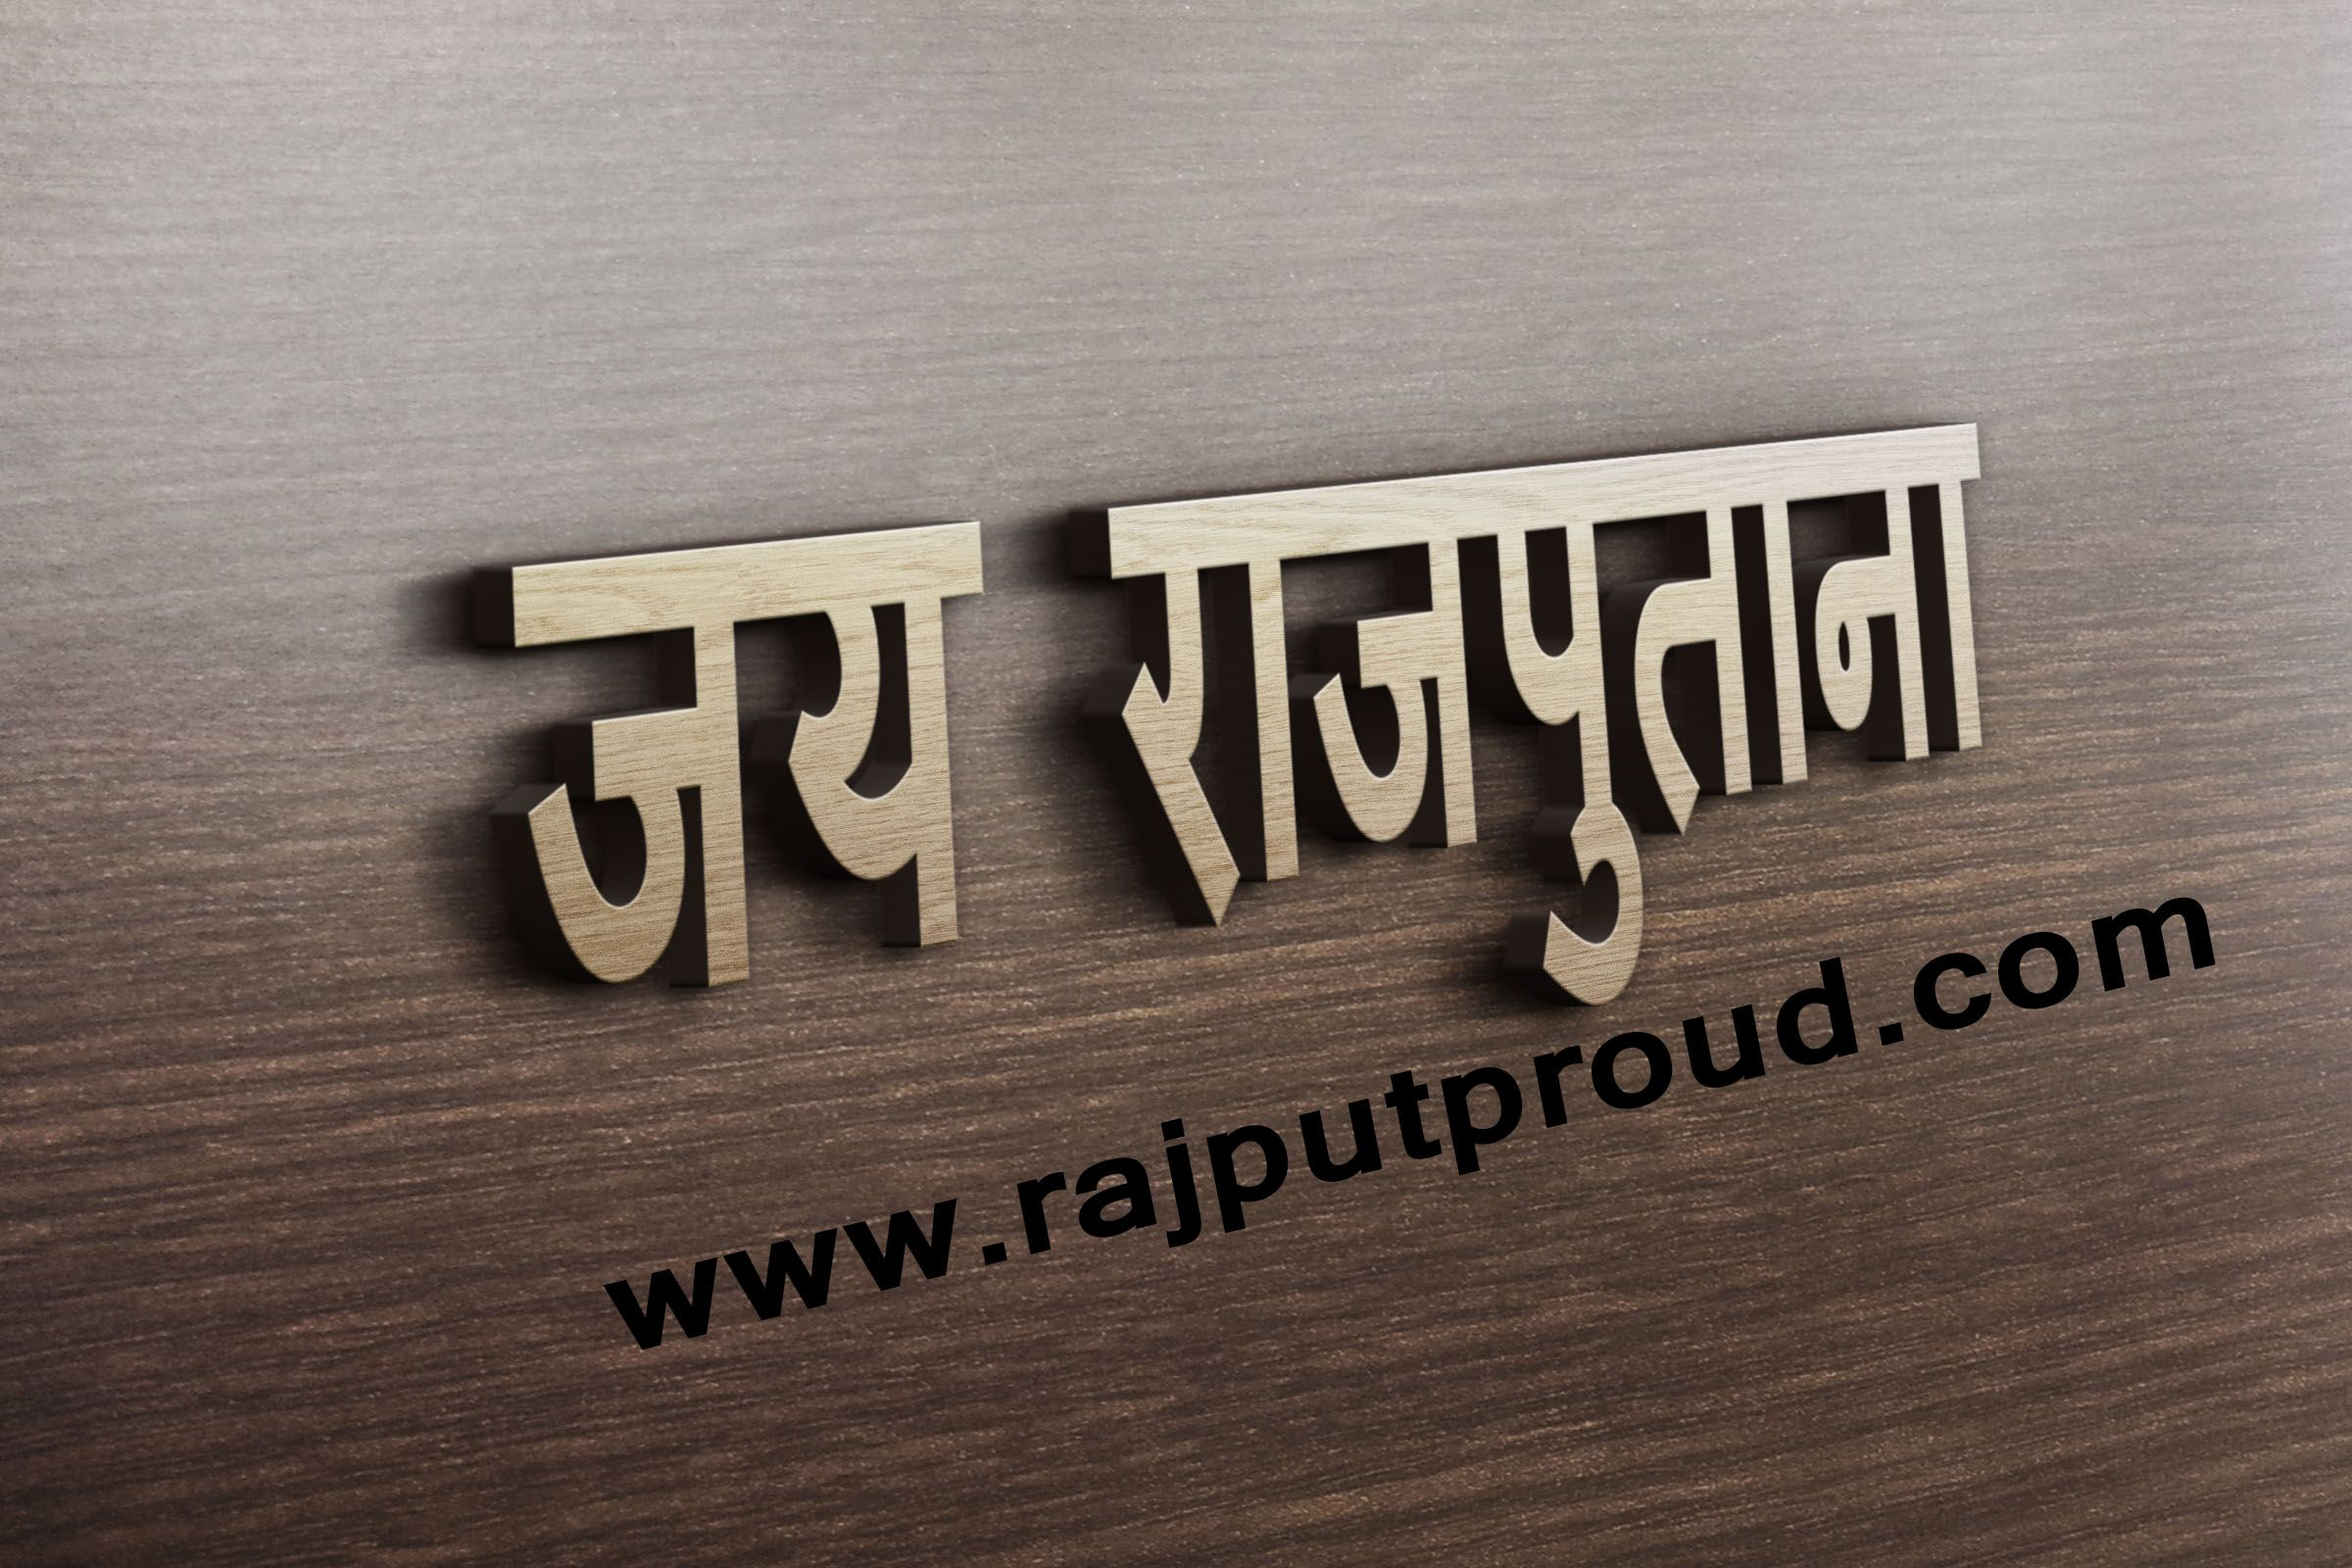 Rajputana 3D Logo Rajput quotes, History wallpaper